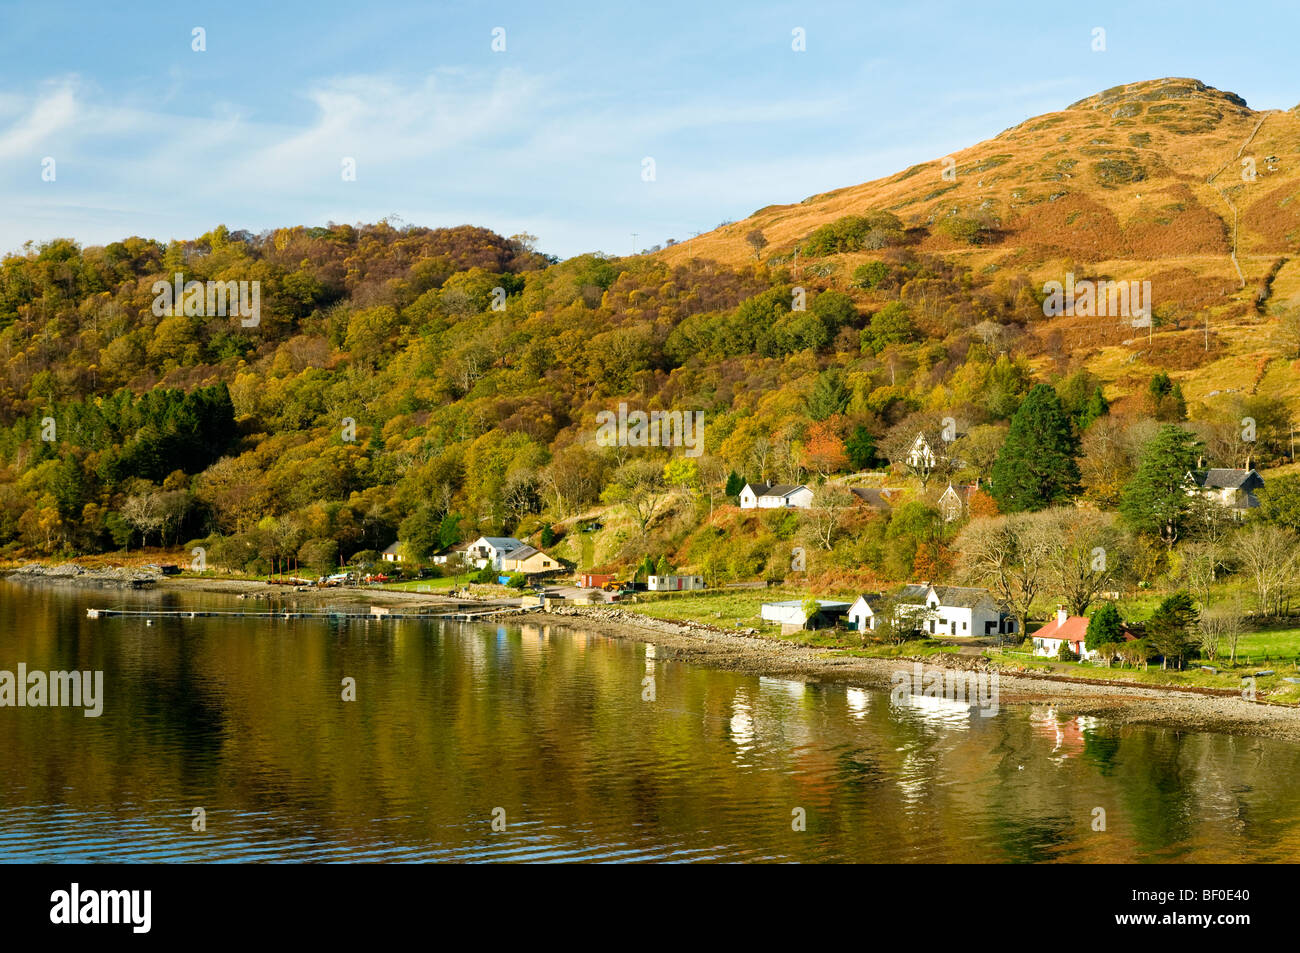 Glenborrodale Kilchoan on the Ardnamurchan Peninsula on the Scottish West Coast Argyll.  SCO 5449. - Stock Image